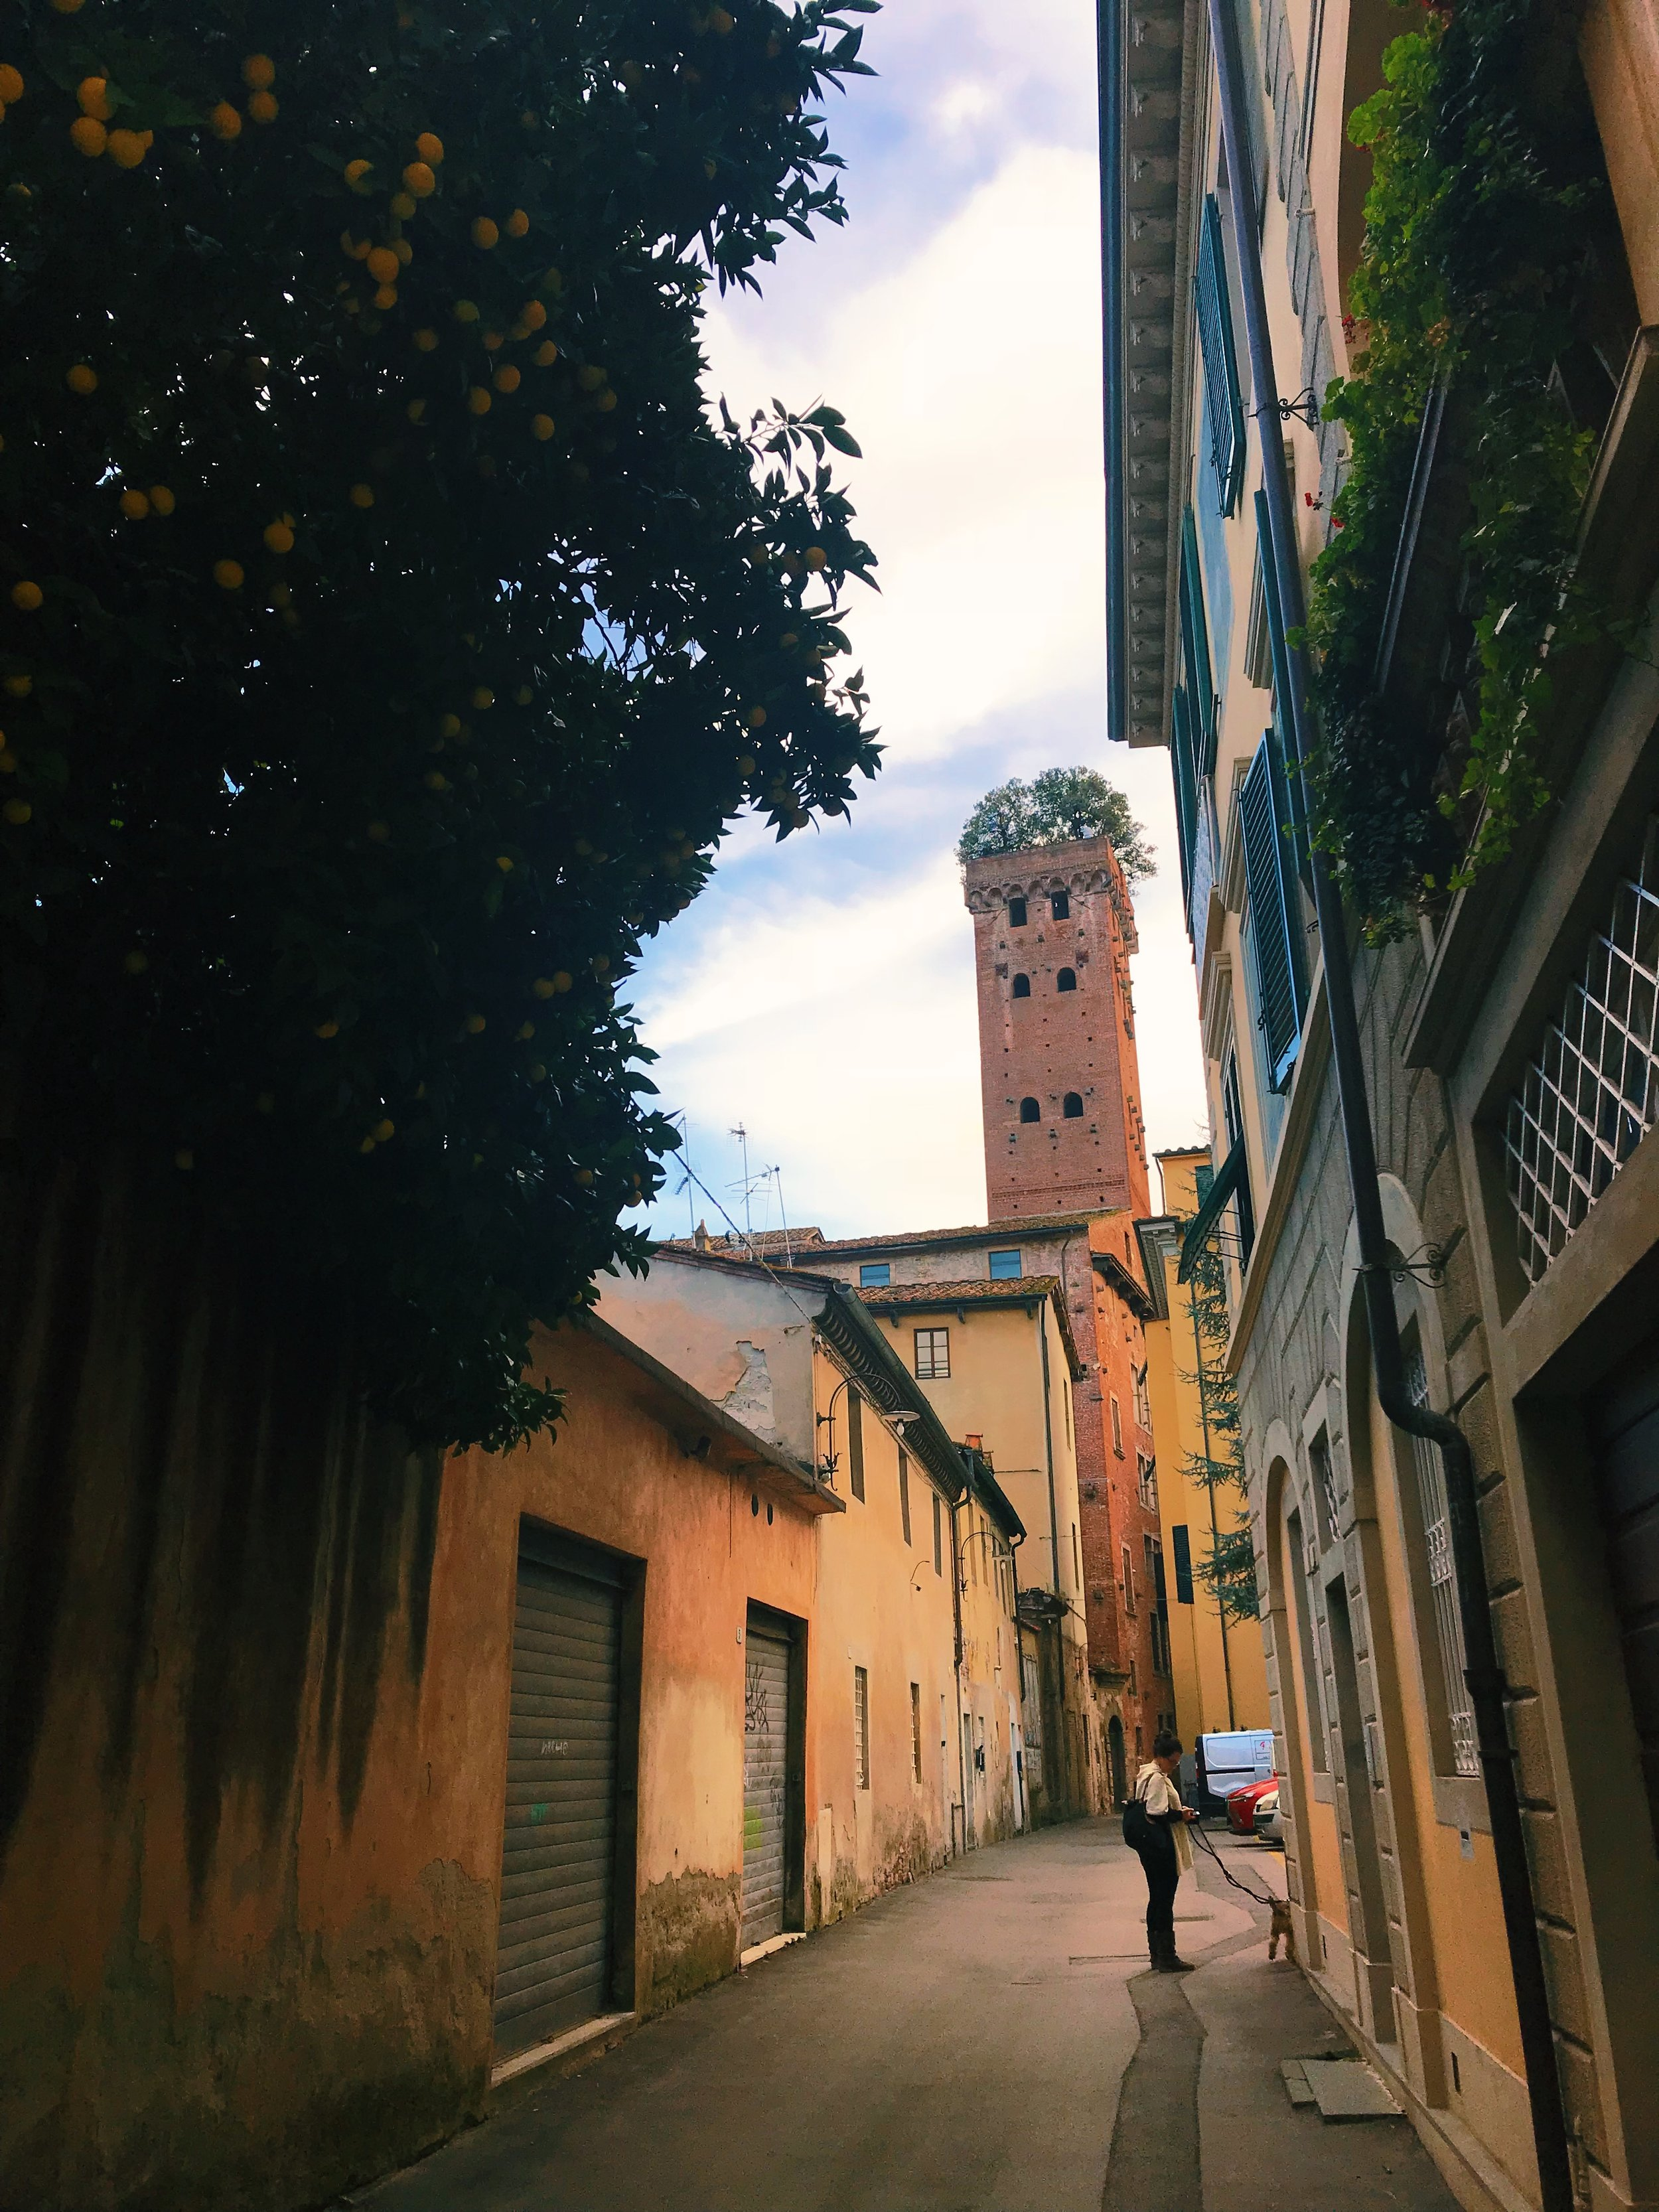 Famous for its rooftop trees, the   Torre Guinigi   (Guinigi Tower) is popular landmark in Lucca. Back in the 1300s, wealthy families tried to outdo each other when it came to bell towers. This is one of the last towers remaining within the city's walls.